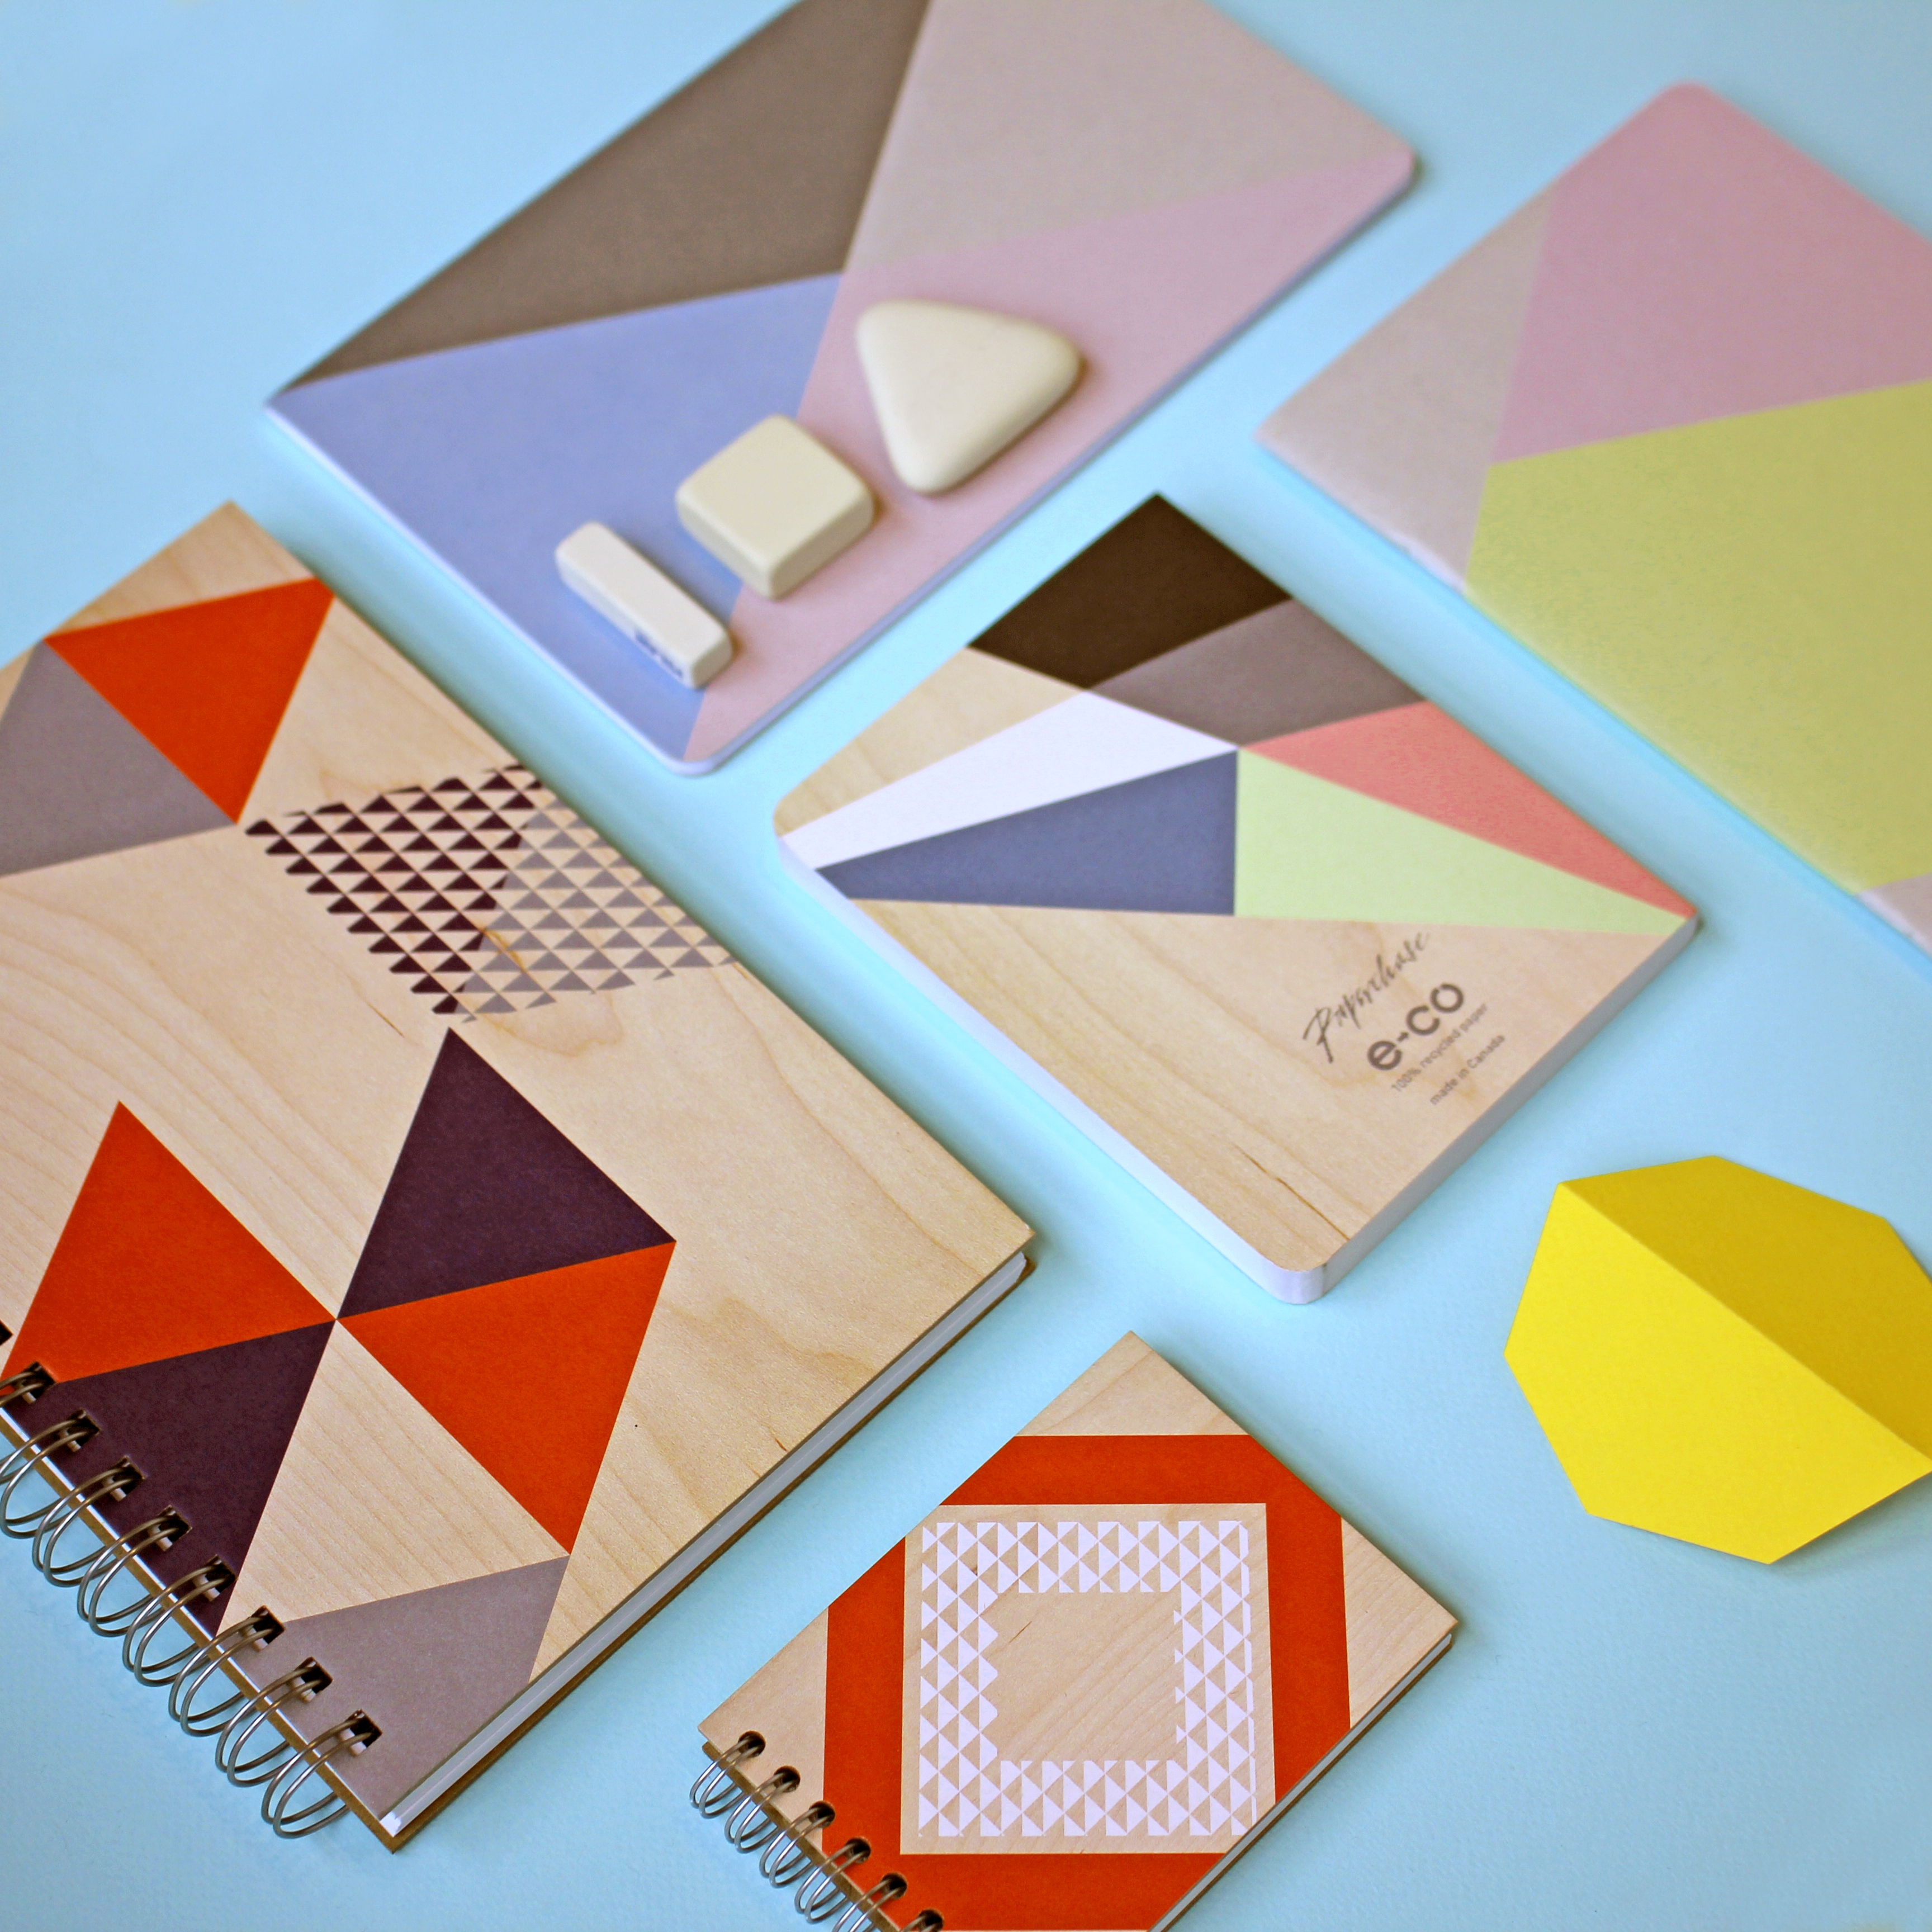 Geometric Books